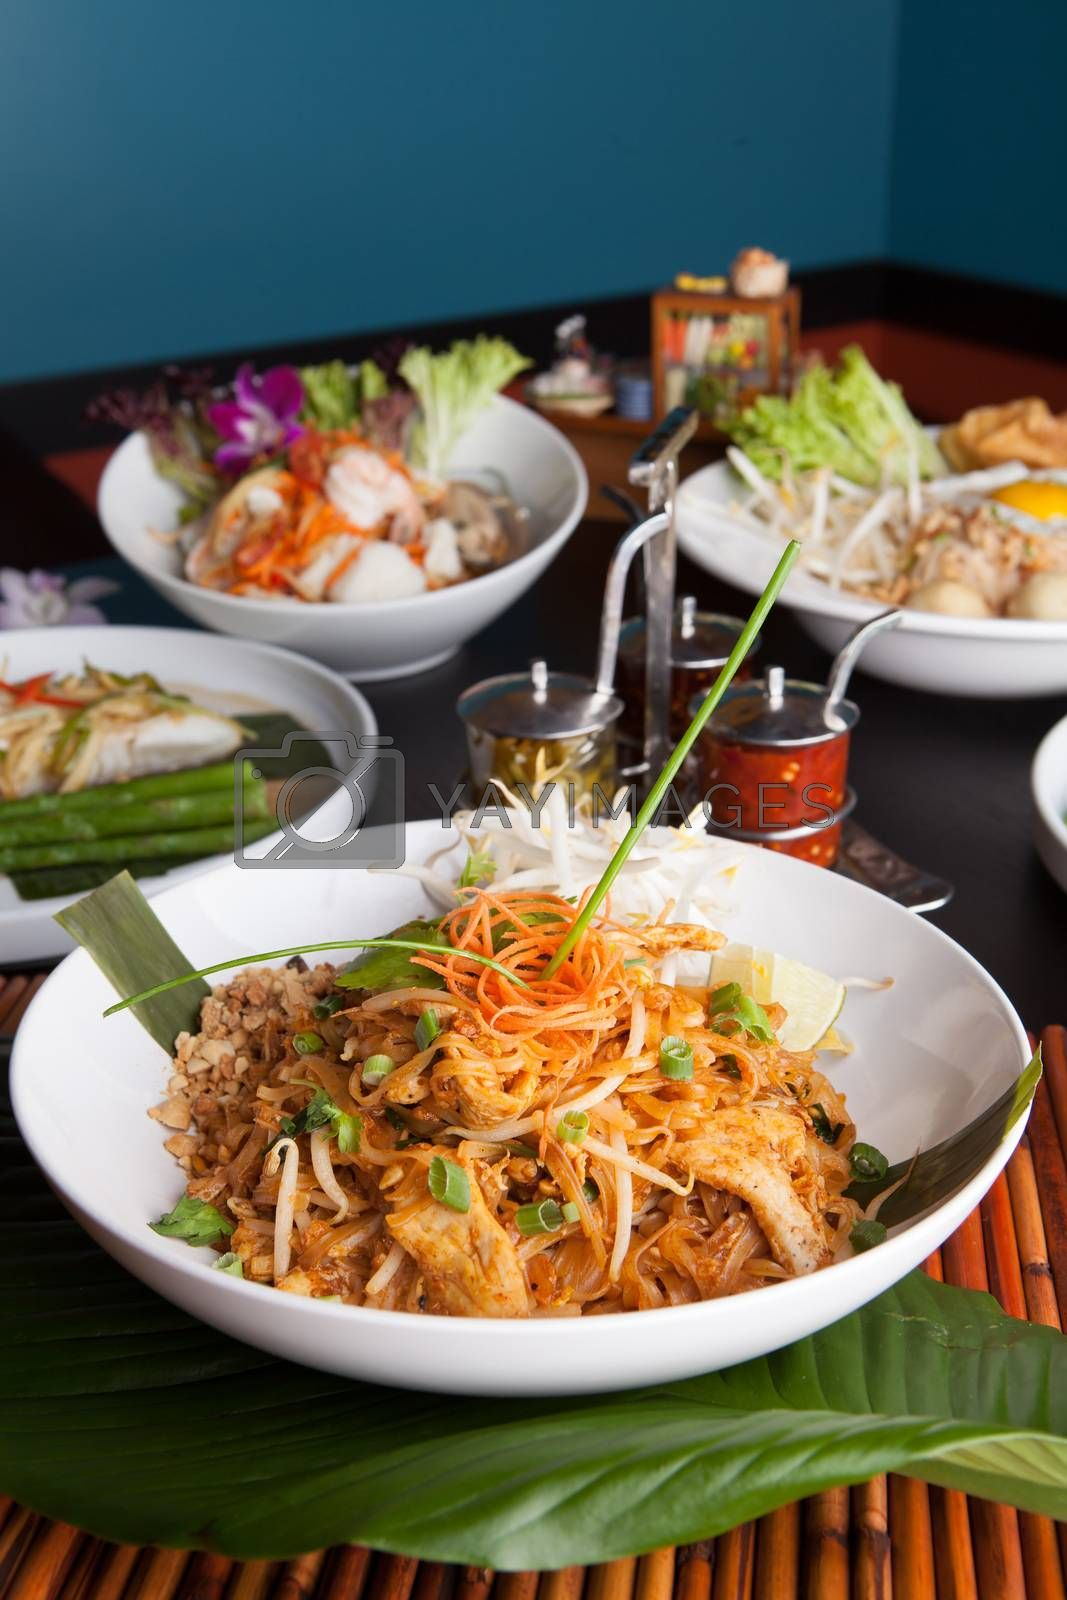 Royalty free image of Chicken Pad Thai Dish by graficallyminded